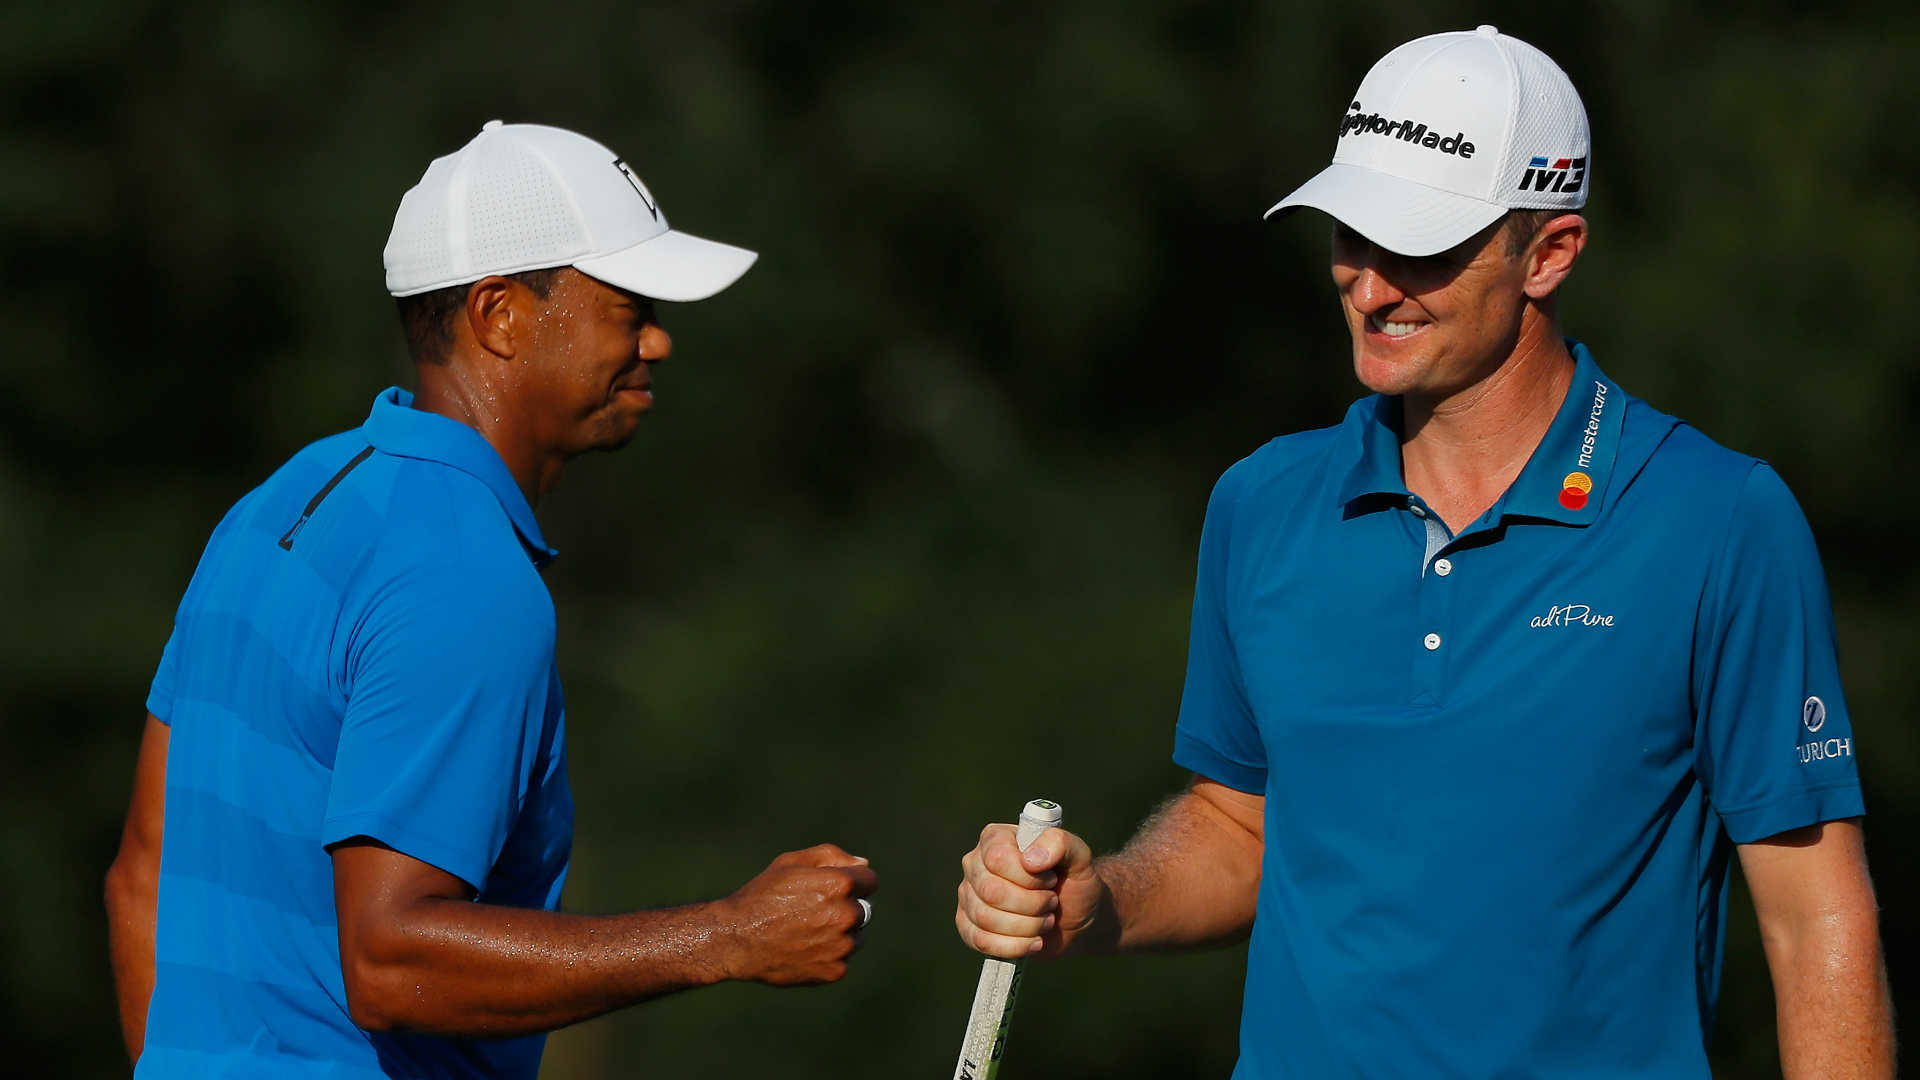 2019 masters updated betting odds  justin rose a slight